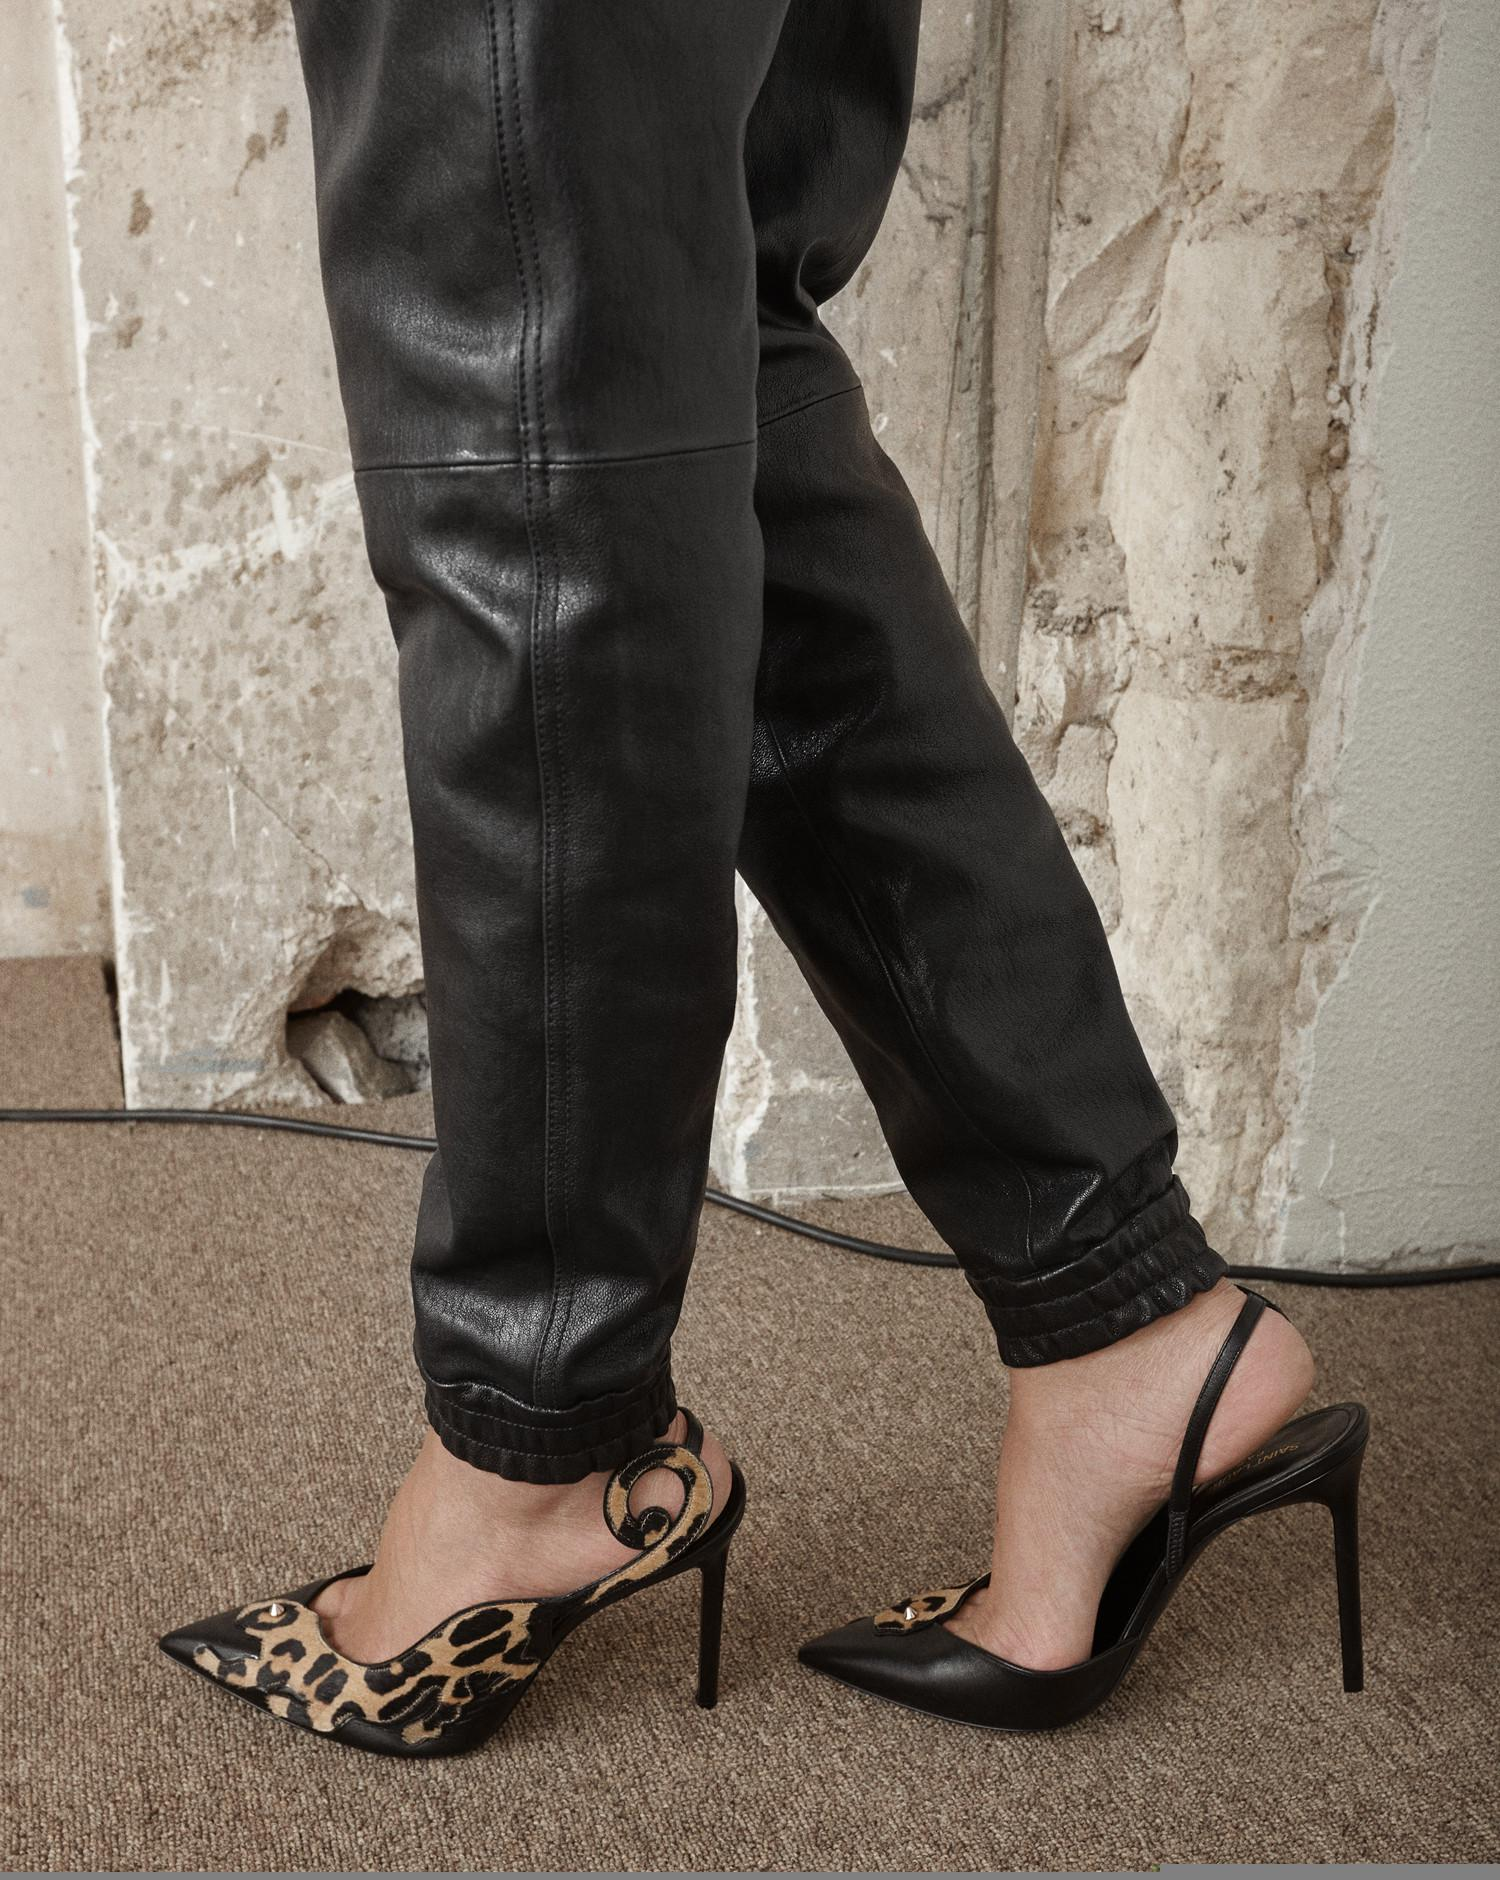 eb47aac1a7 Saint Laurent Anja 105 Punk Leopard Slingback Pump In Black Leather And Tan  Cowhide